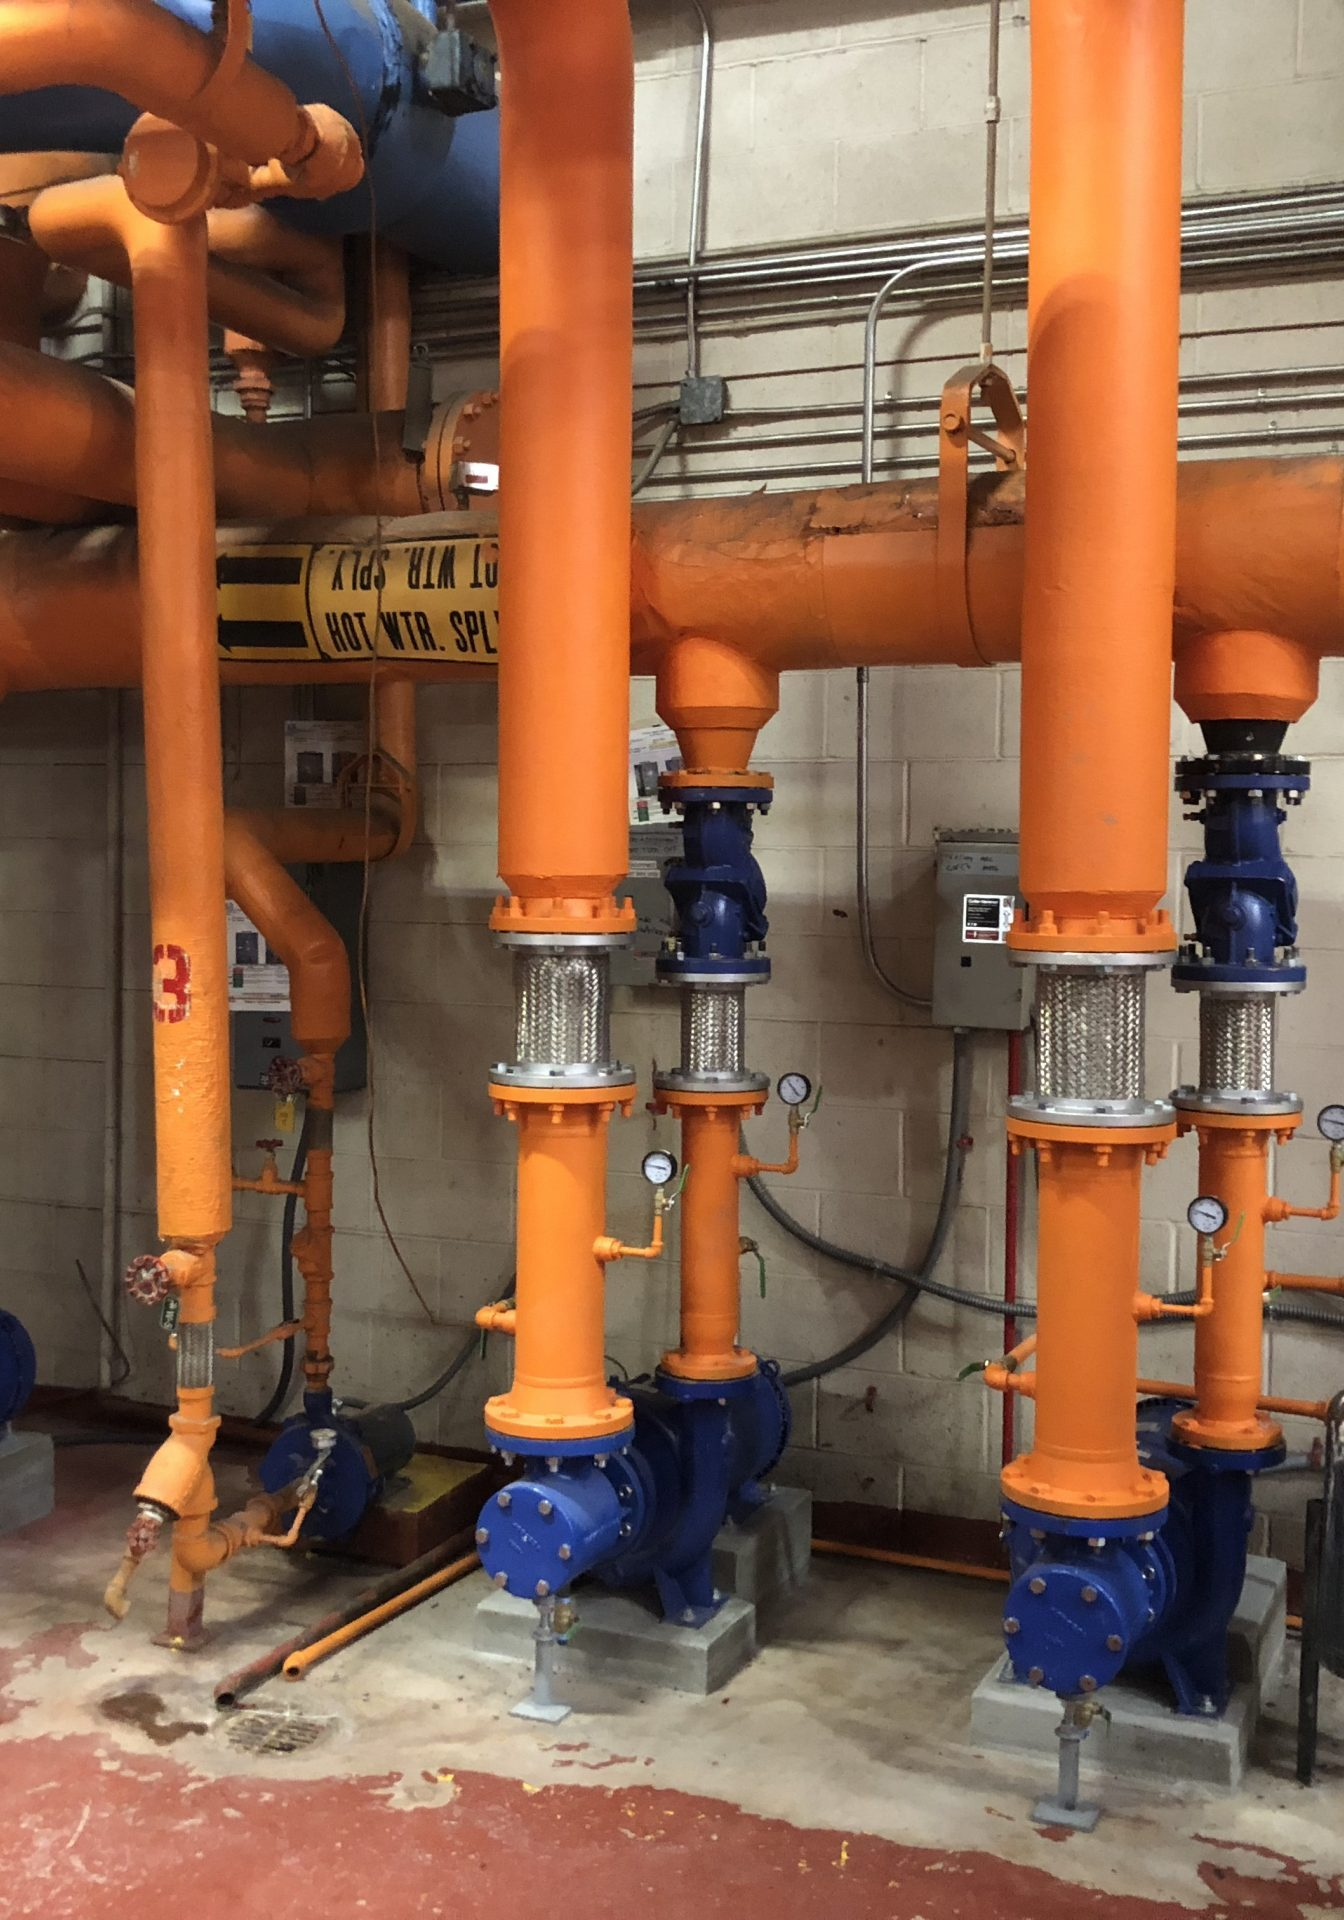 Boiler room with an orange paint